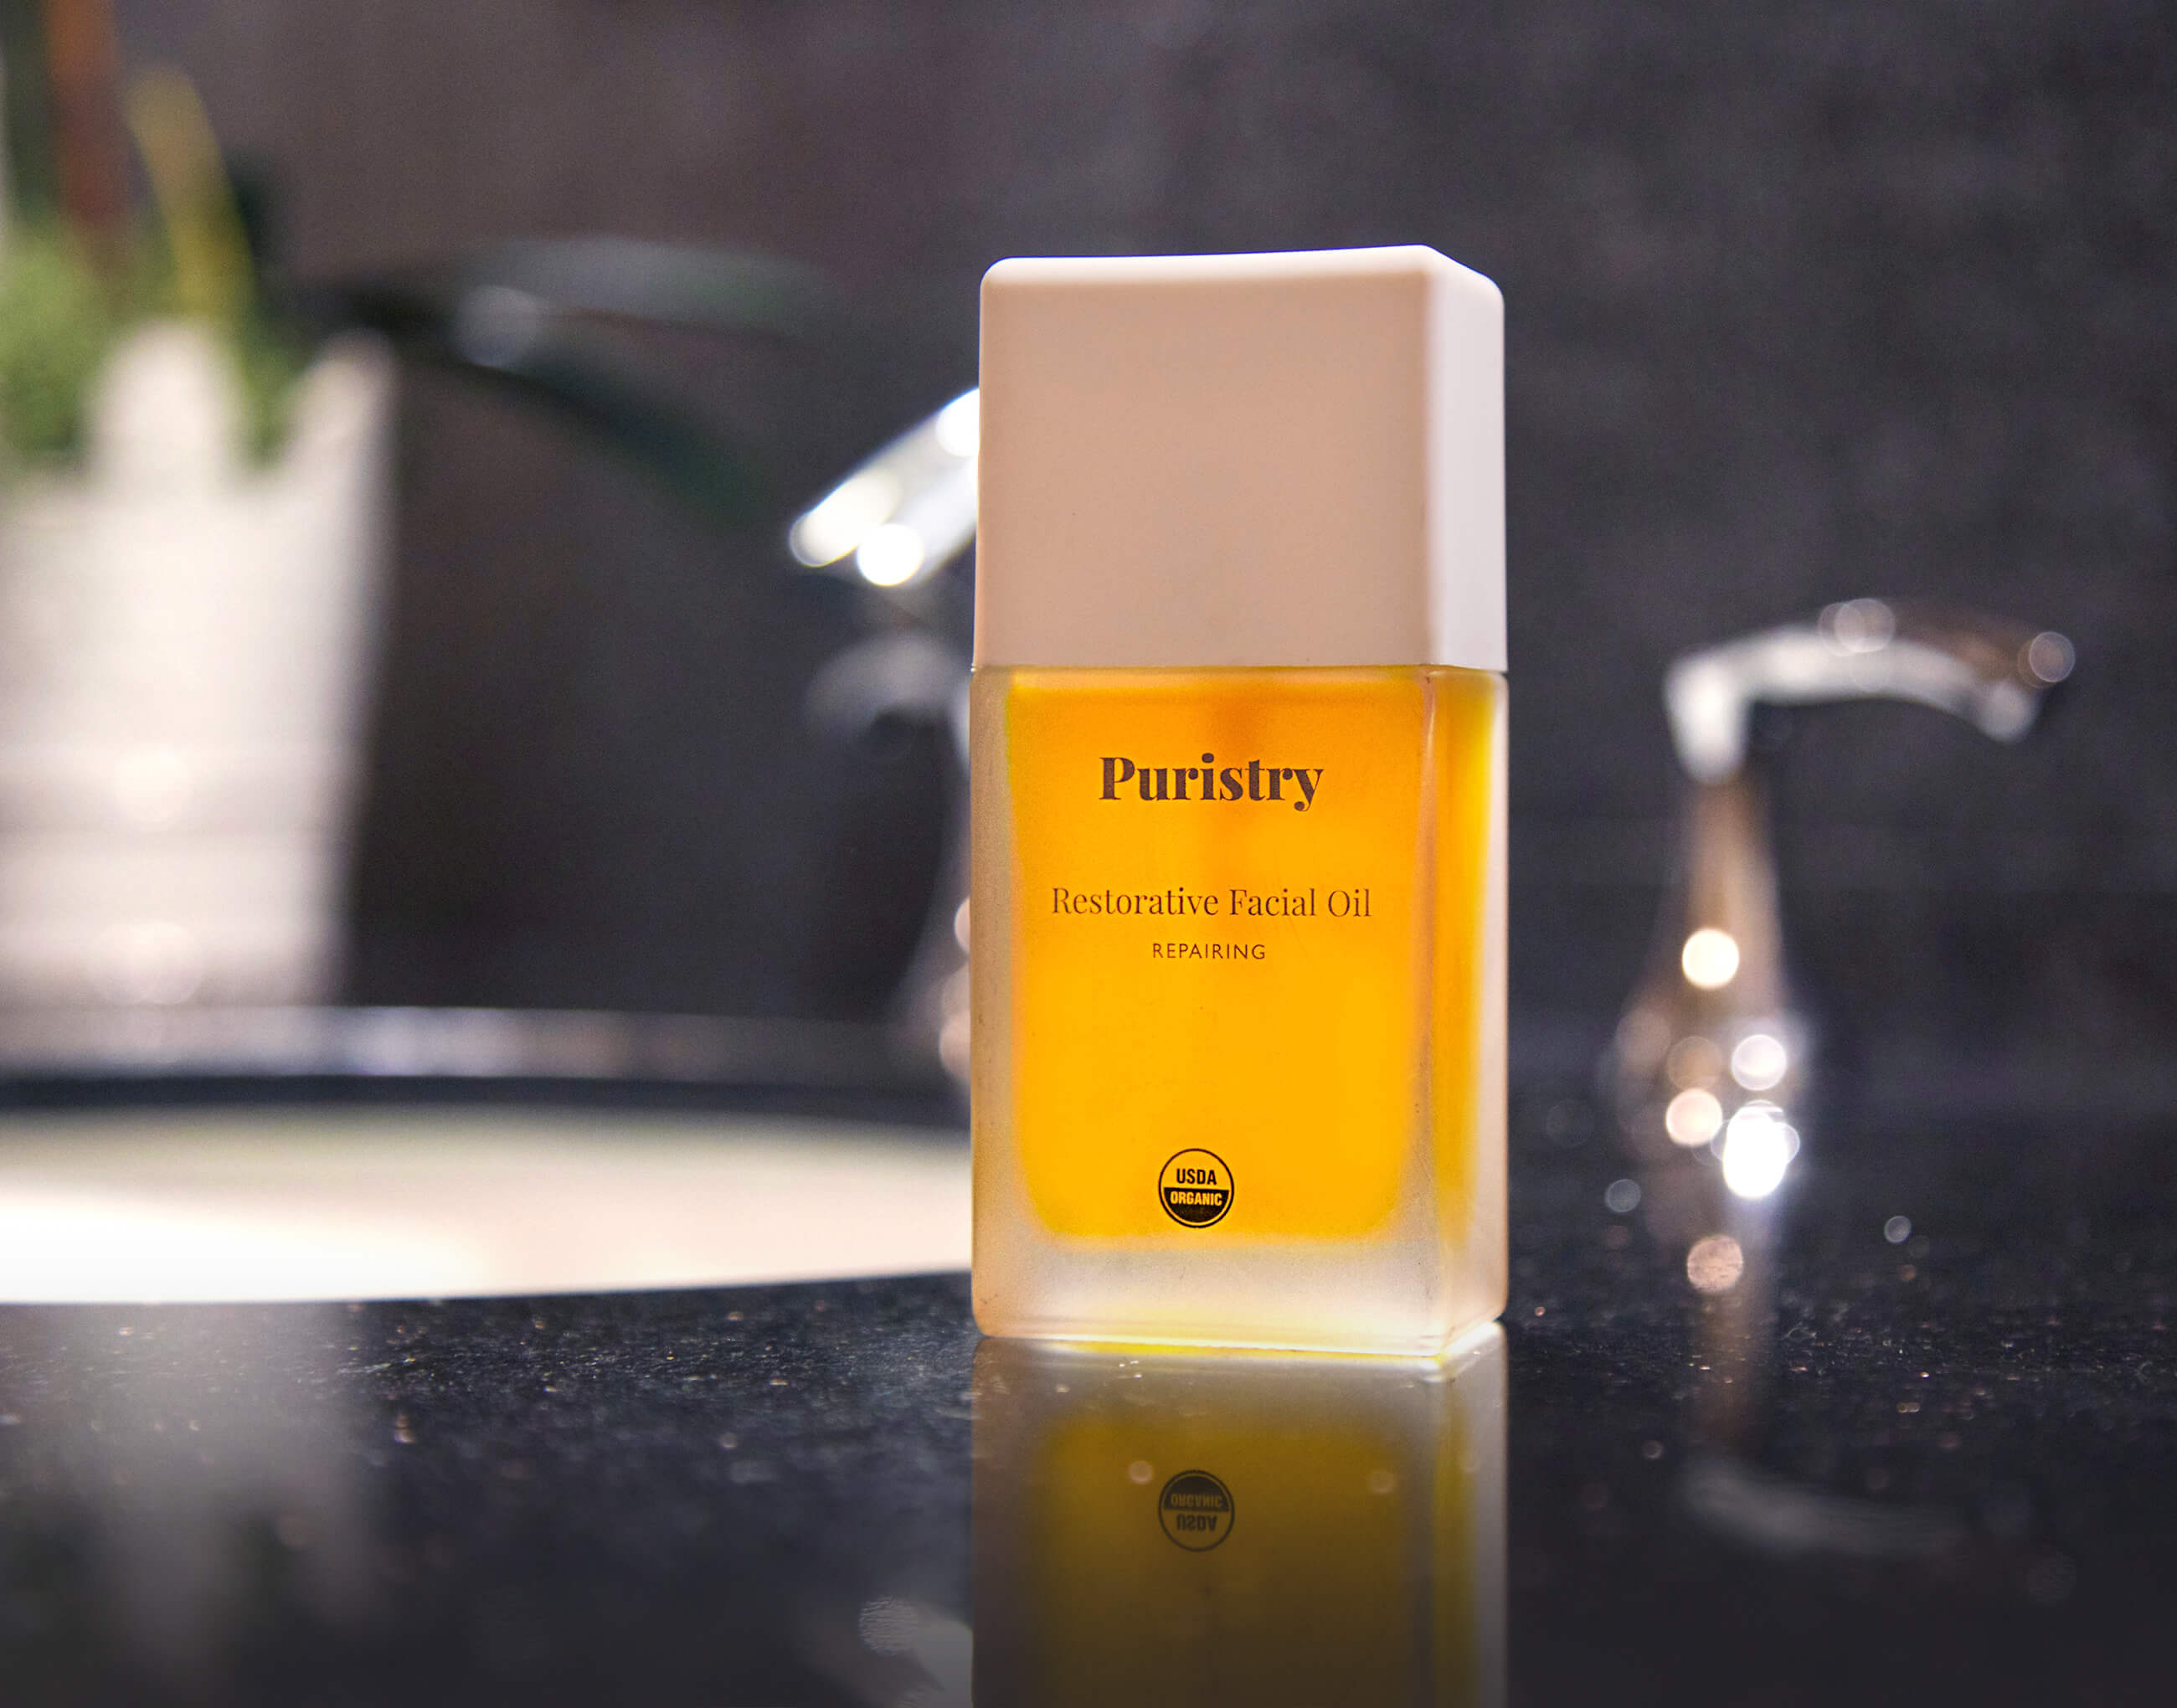 Puristry Facial Oil